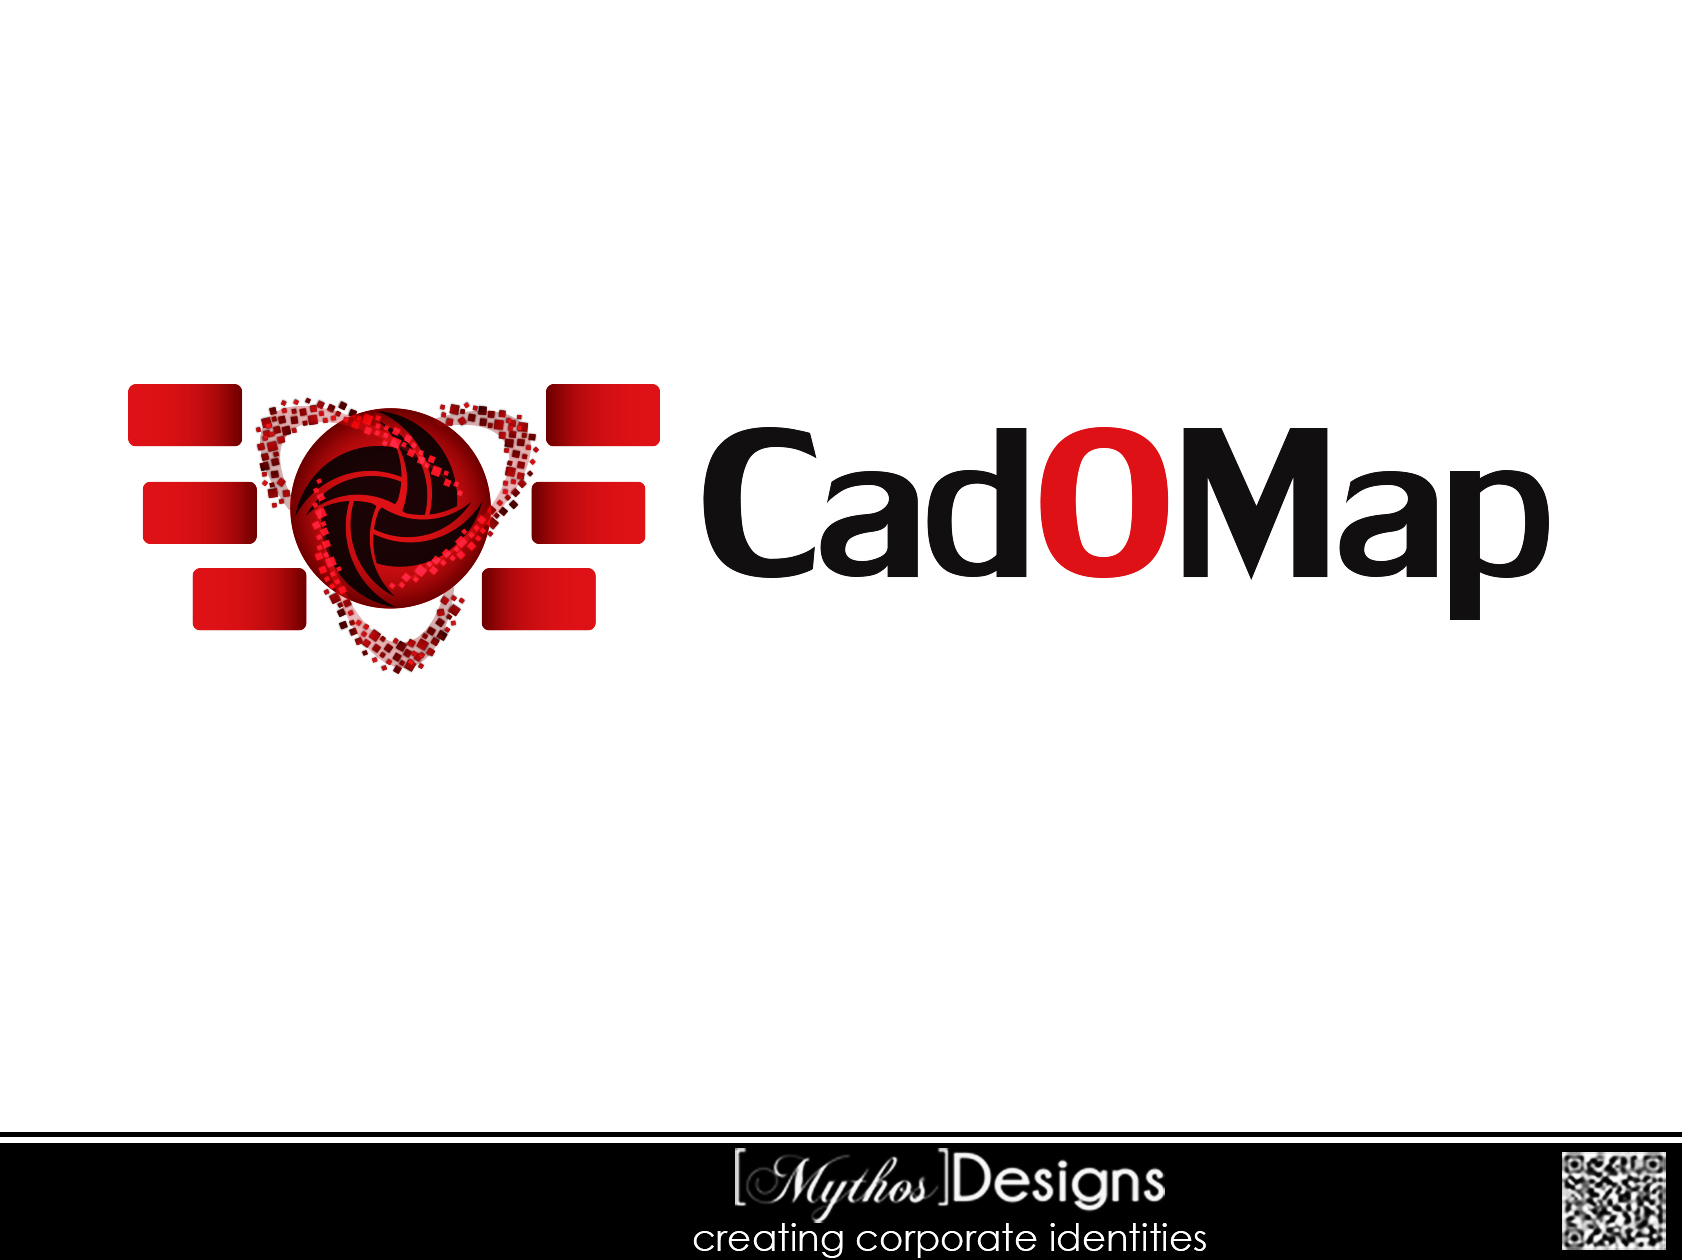 Logo Design by Mythos Designs - Entry No. 49 in the Logo Design Contest Captivating Logo Design for CadOMap software product.